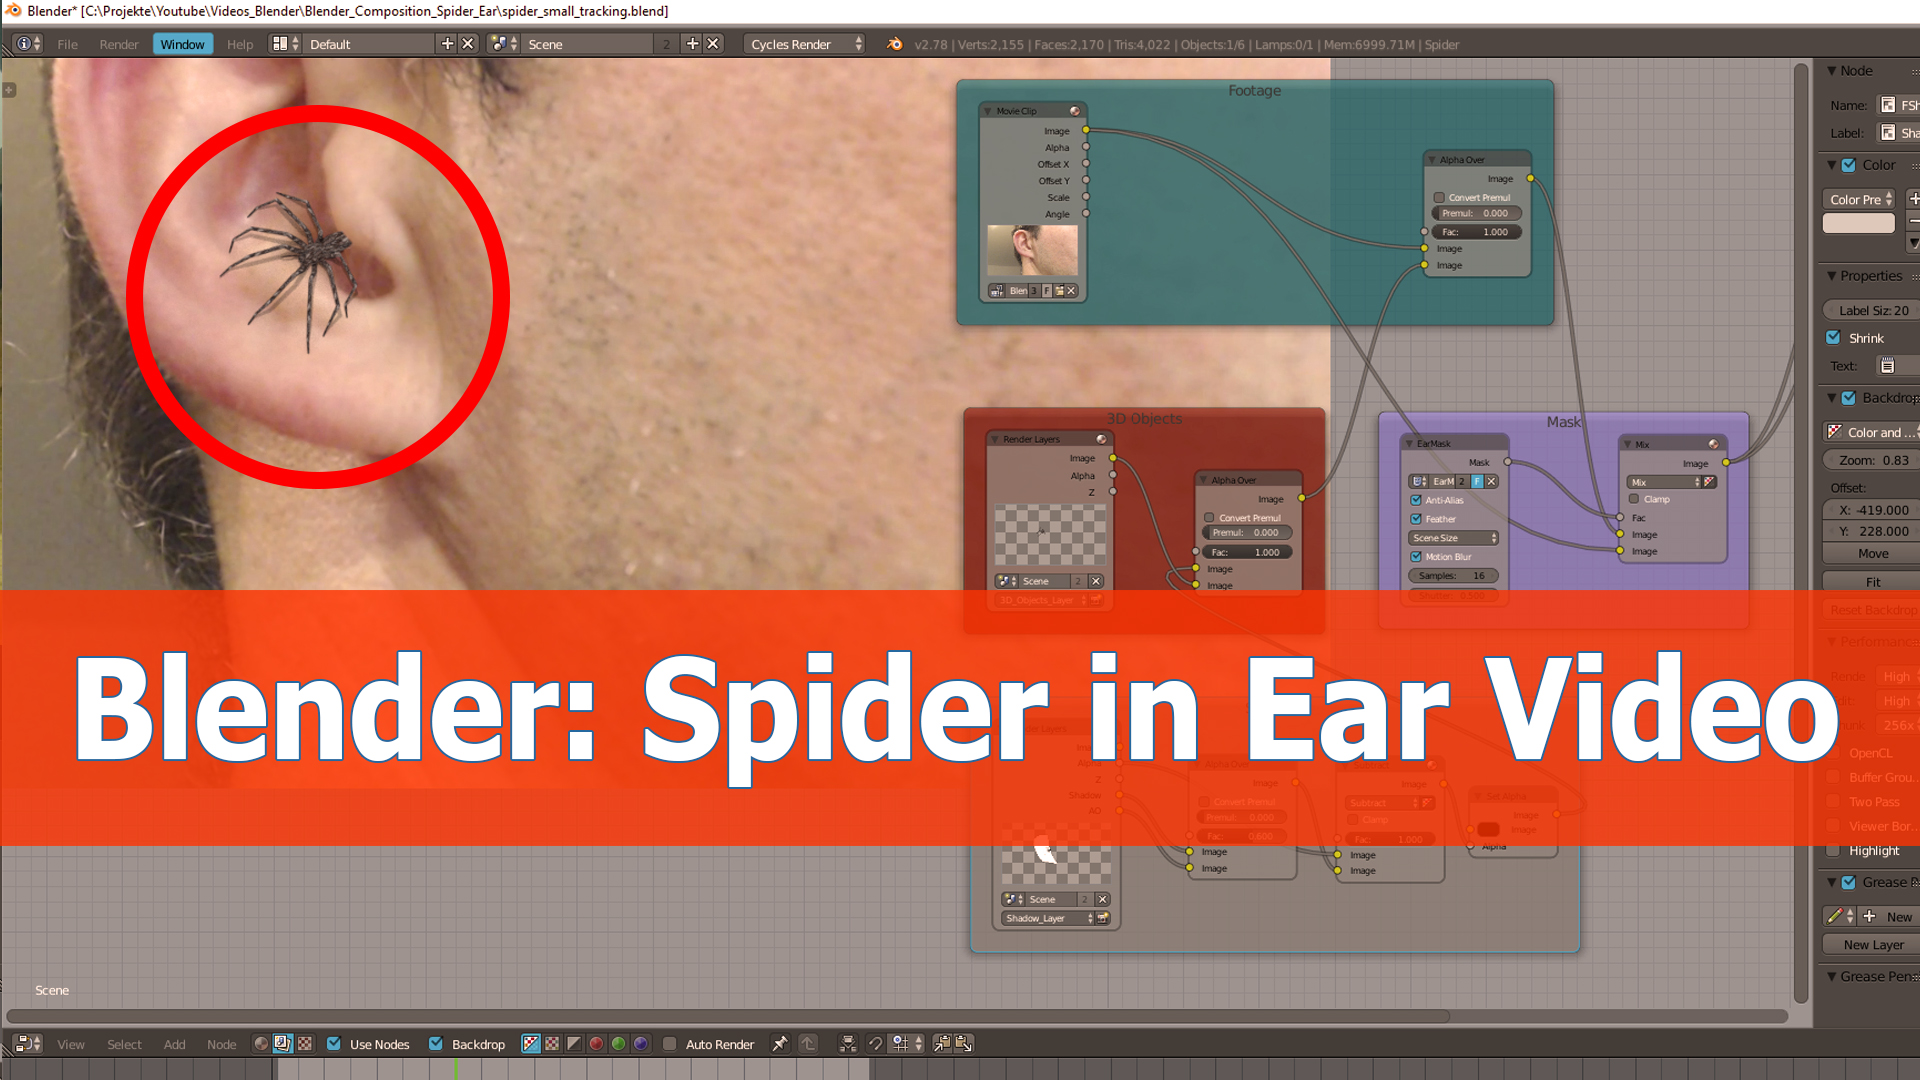 Blender compositing video: Spider inside the ear - BlenderNation